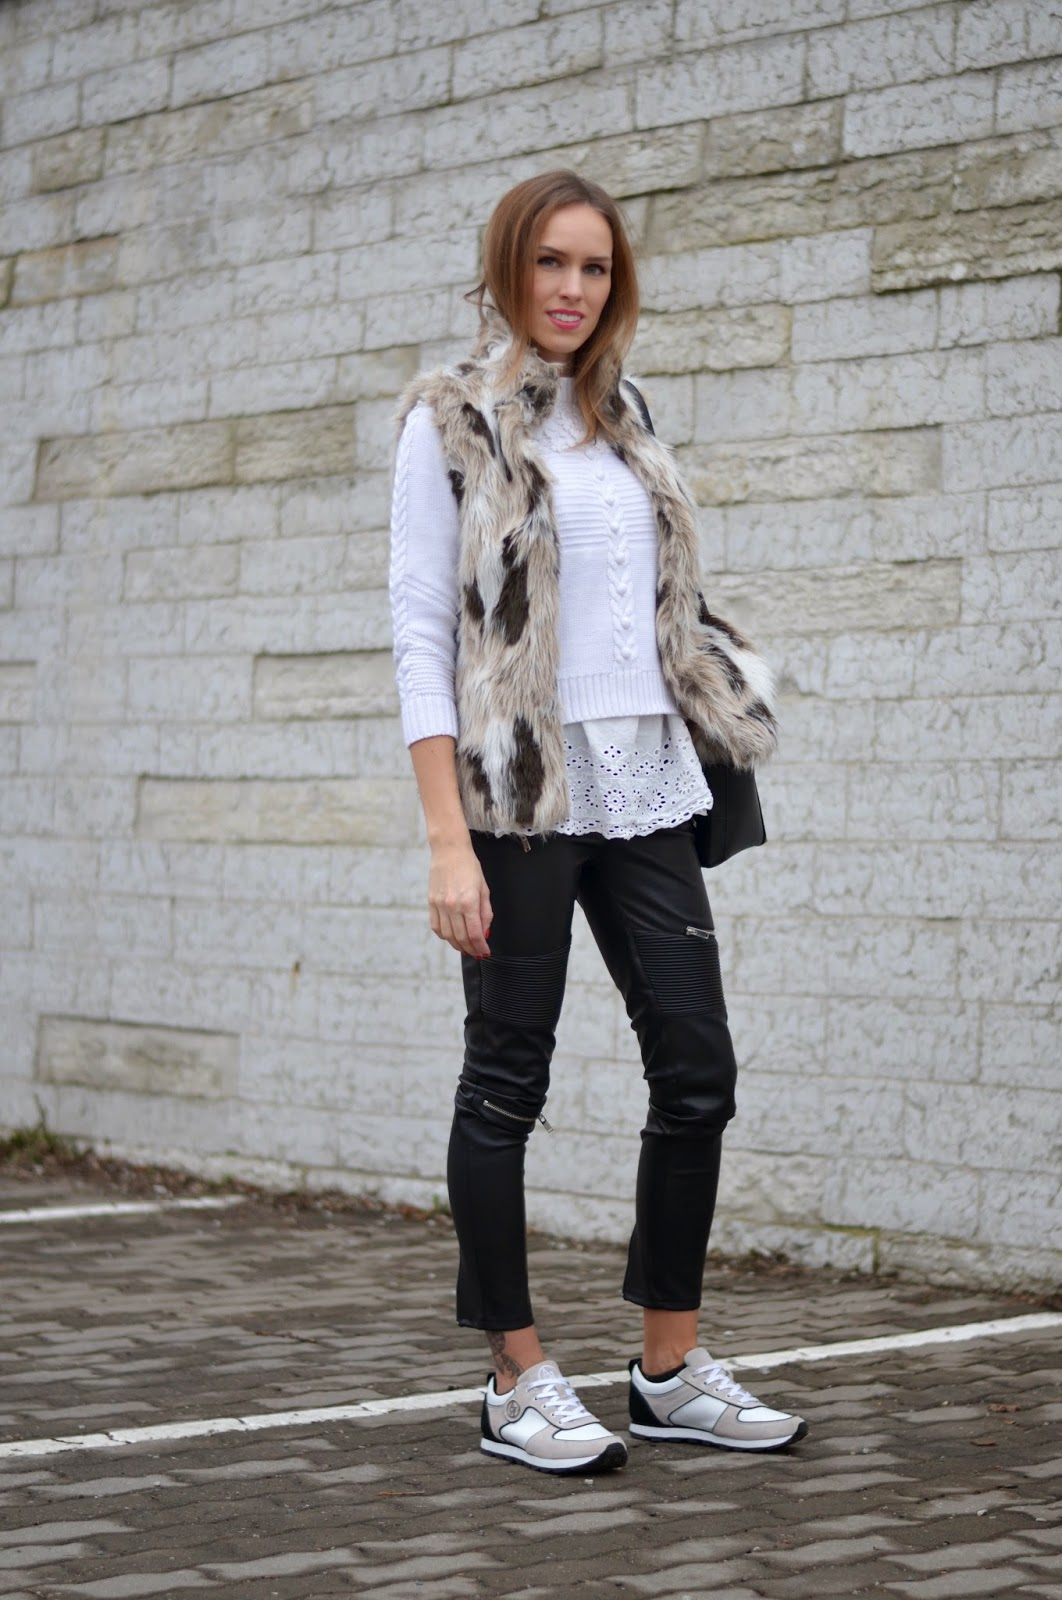 zara-fur-gilet-white-lace-top-crochet-jumper-leather-pants-white-sneakers kristjaana mere